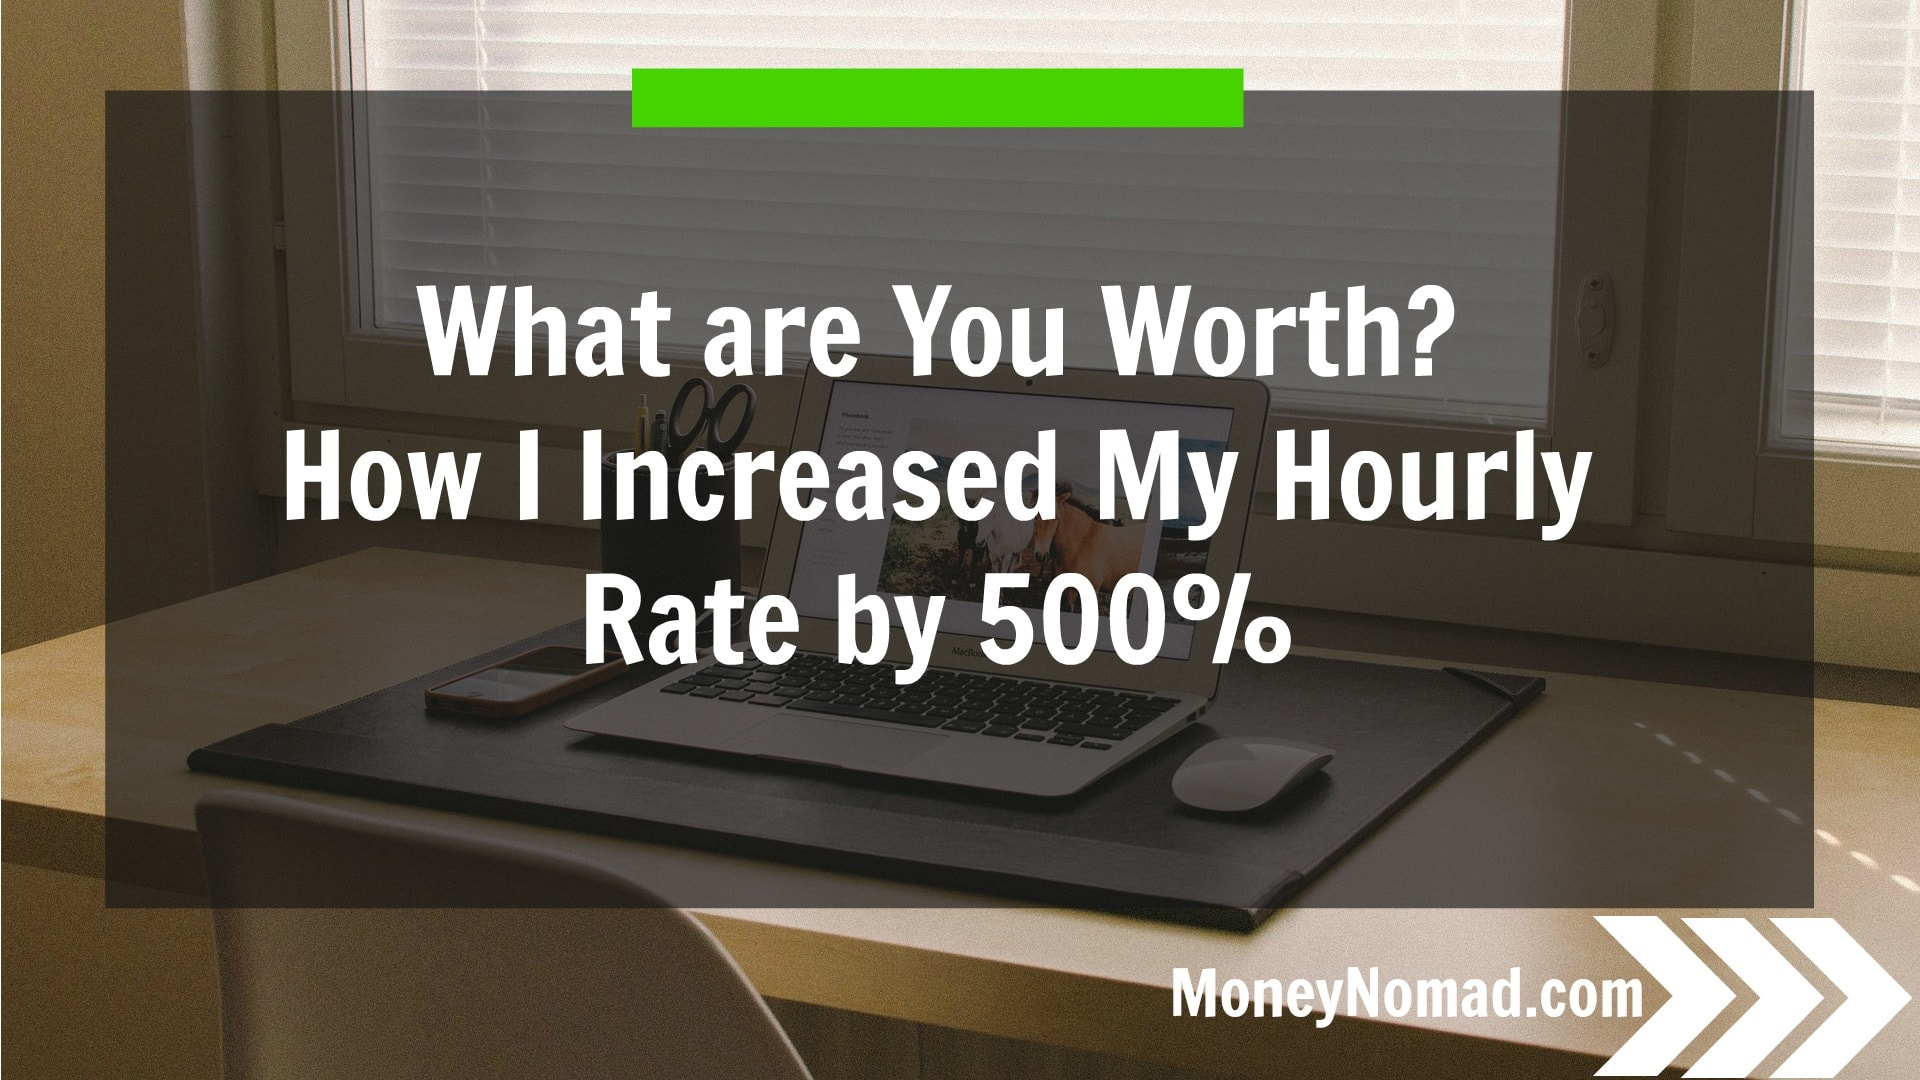 What are you worth - how to make more money